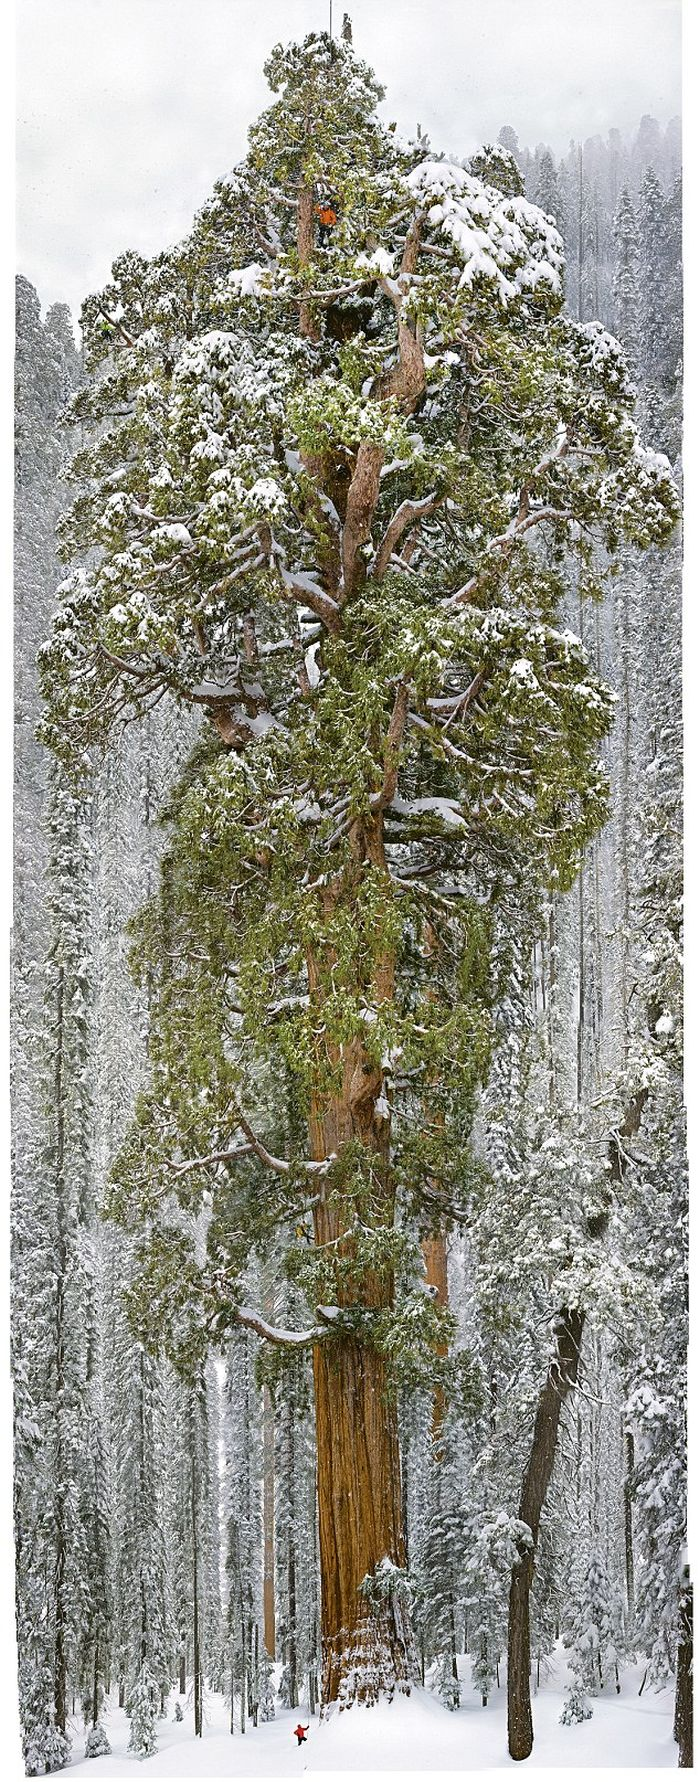 How to Make a Photo of a Giant Tree (7 pics)